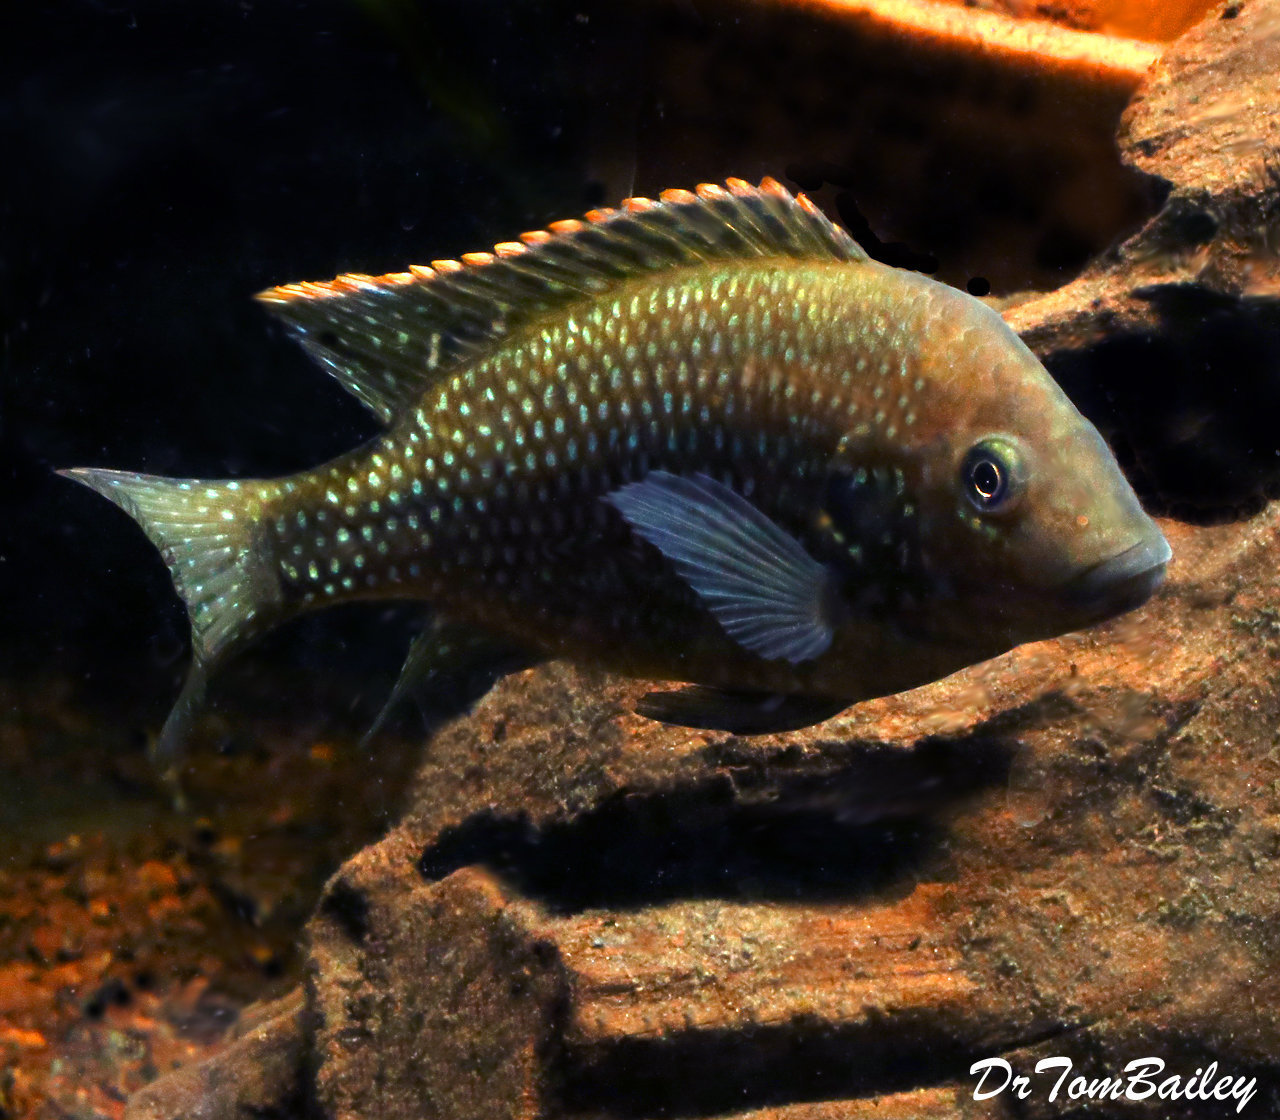 Premium Very Rare New, Danakilia Shukoray Cichlid, from Eritrea in Northeastern Africa